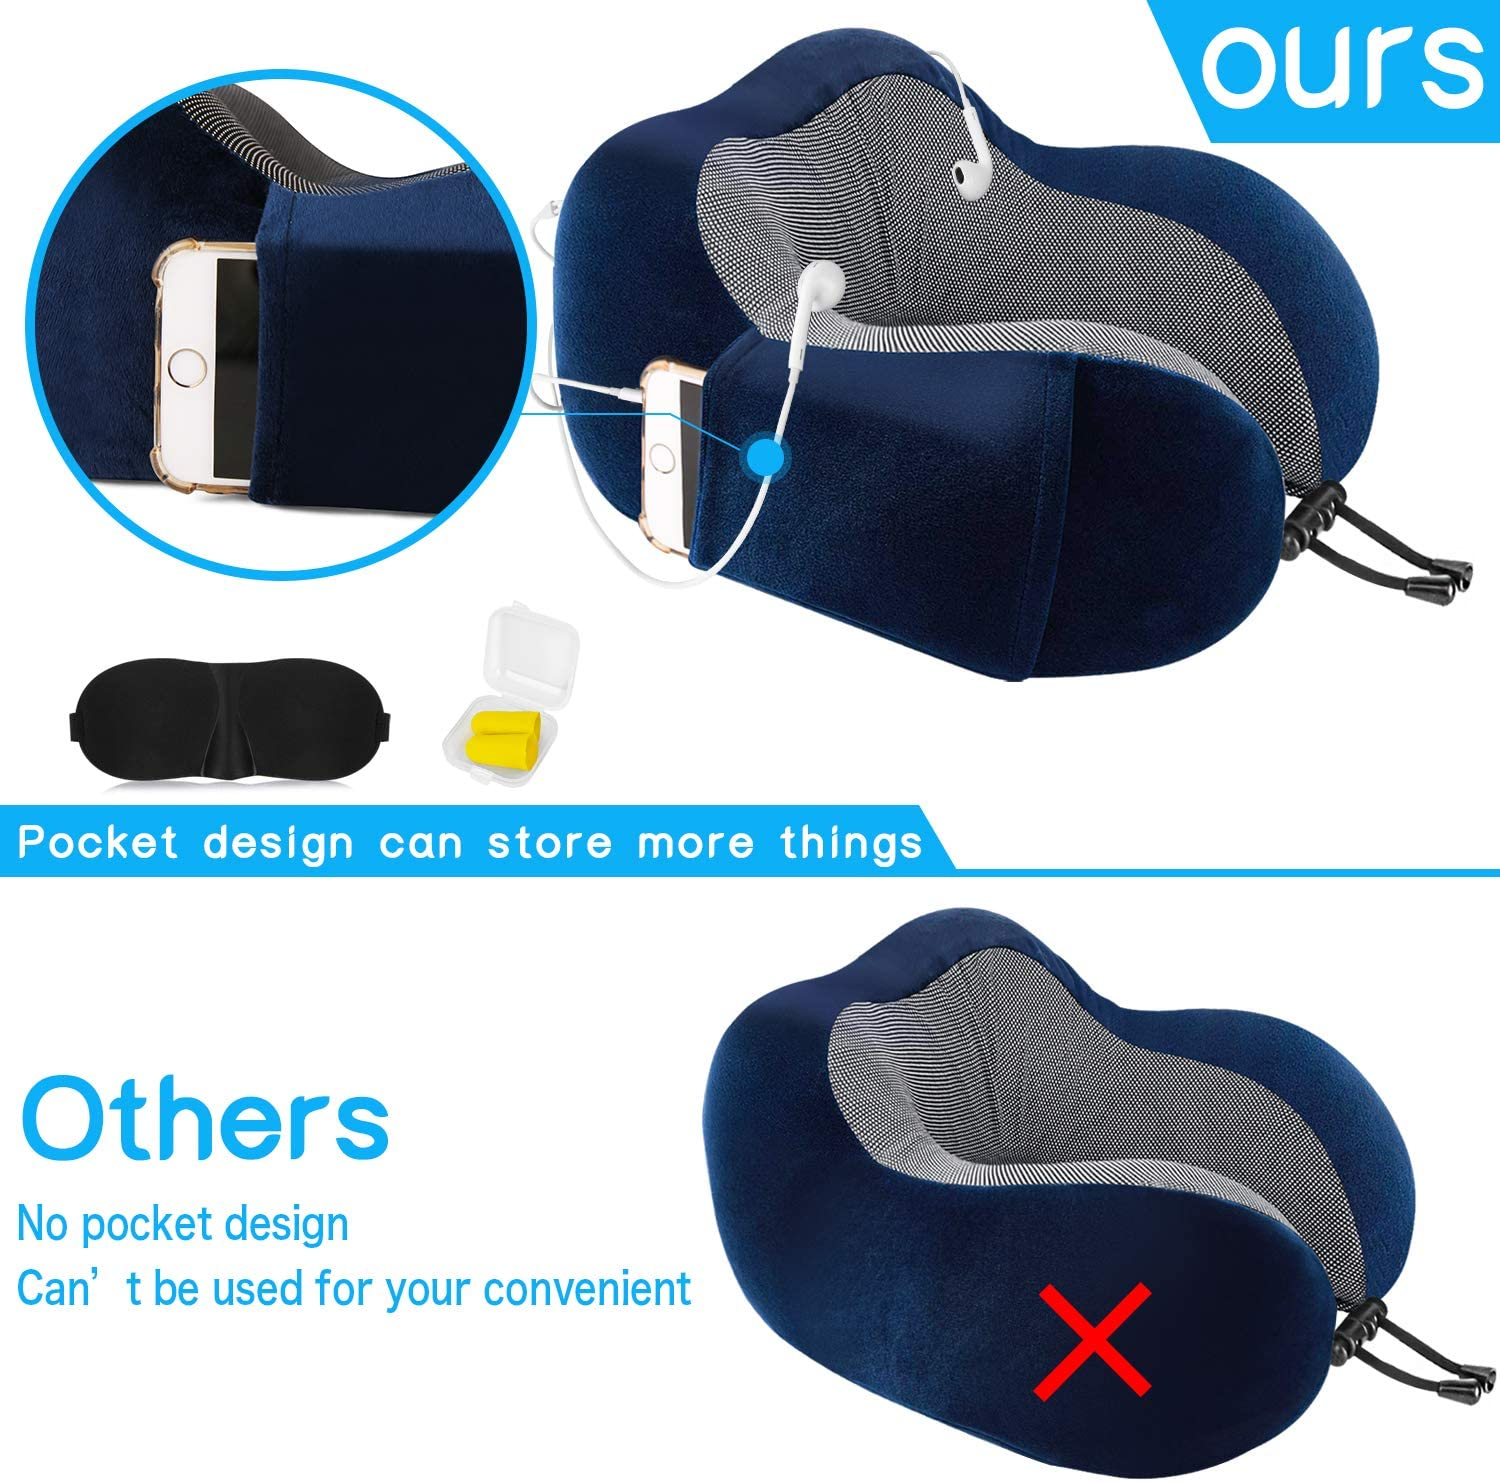 Travel Pillow Memory Foam Neck Pillow for travelling Blue Earplugs Neck support Pillow Travel Kit Compact and Breathable for Sleeping Airplane Car Office with 3D Contoured Eye Masks Storage Pouch